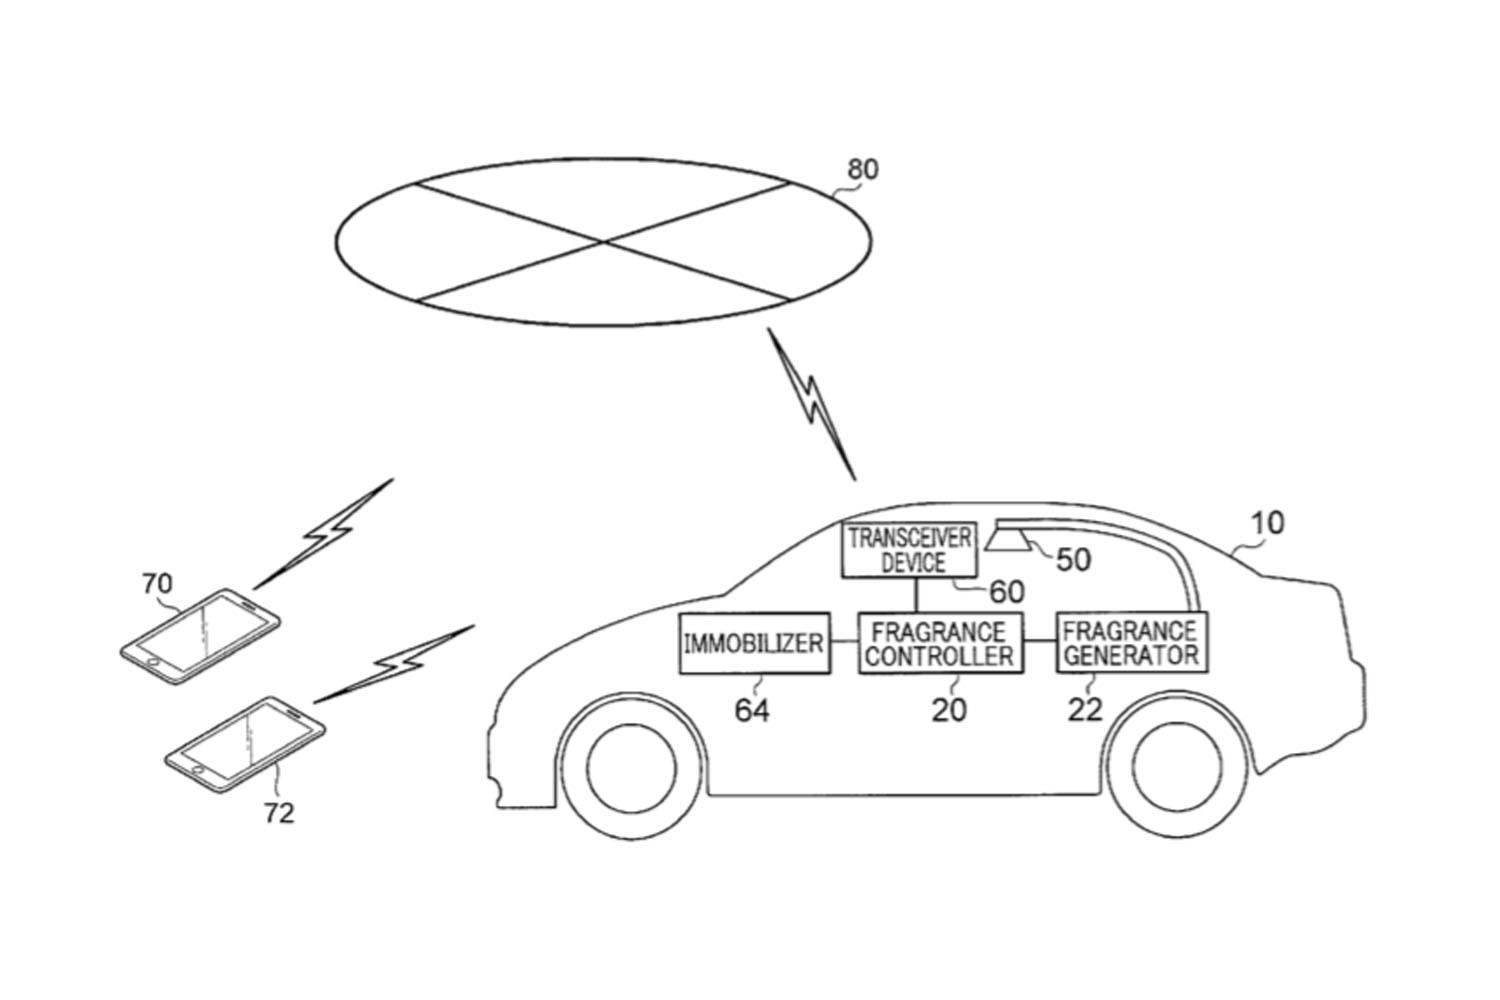 toyota-fragrance-patent-application-inline